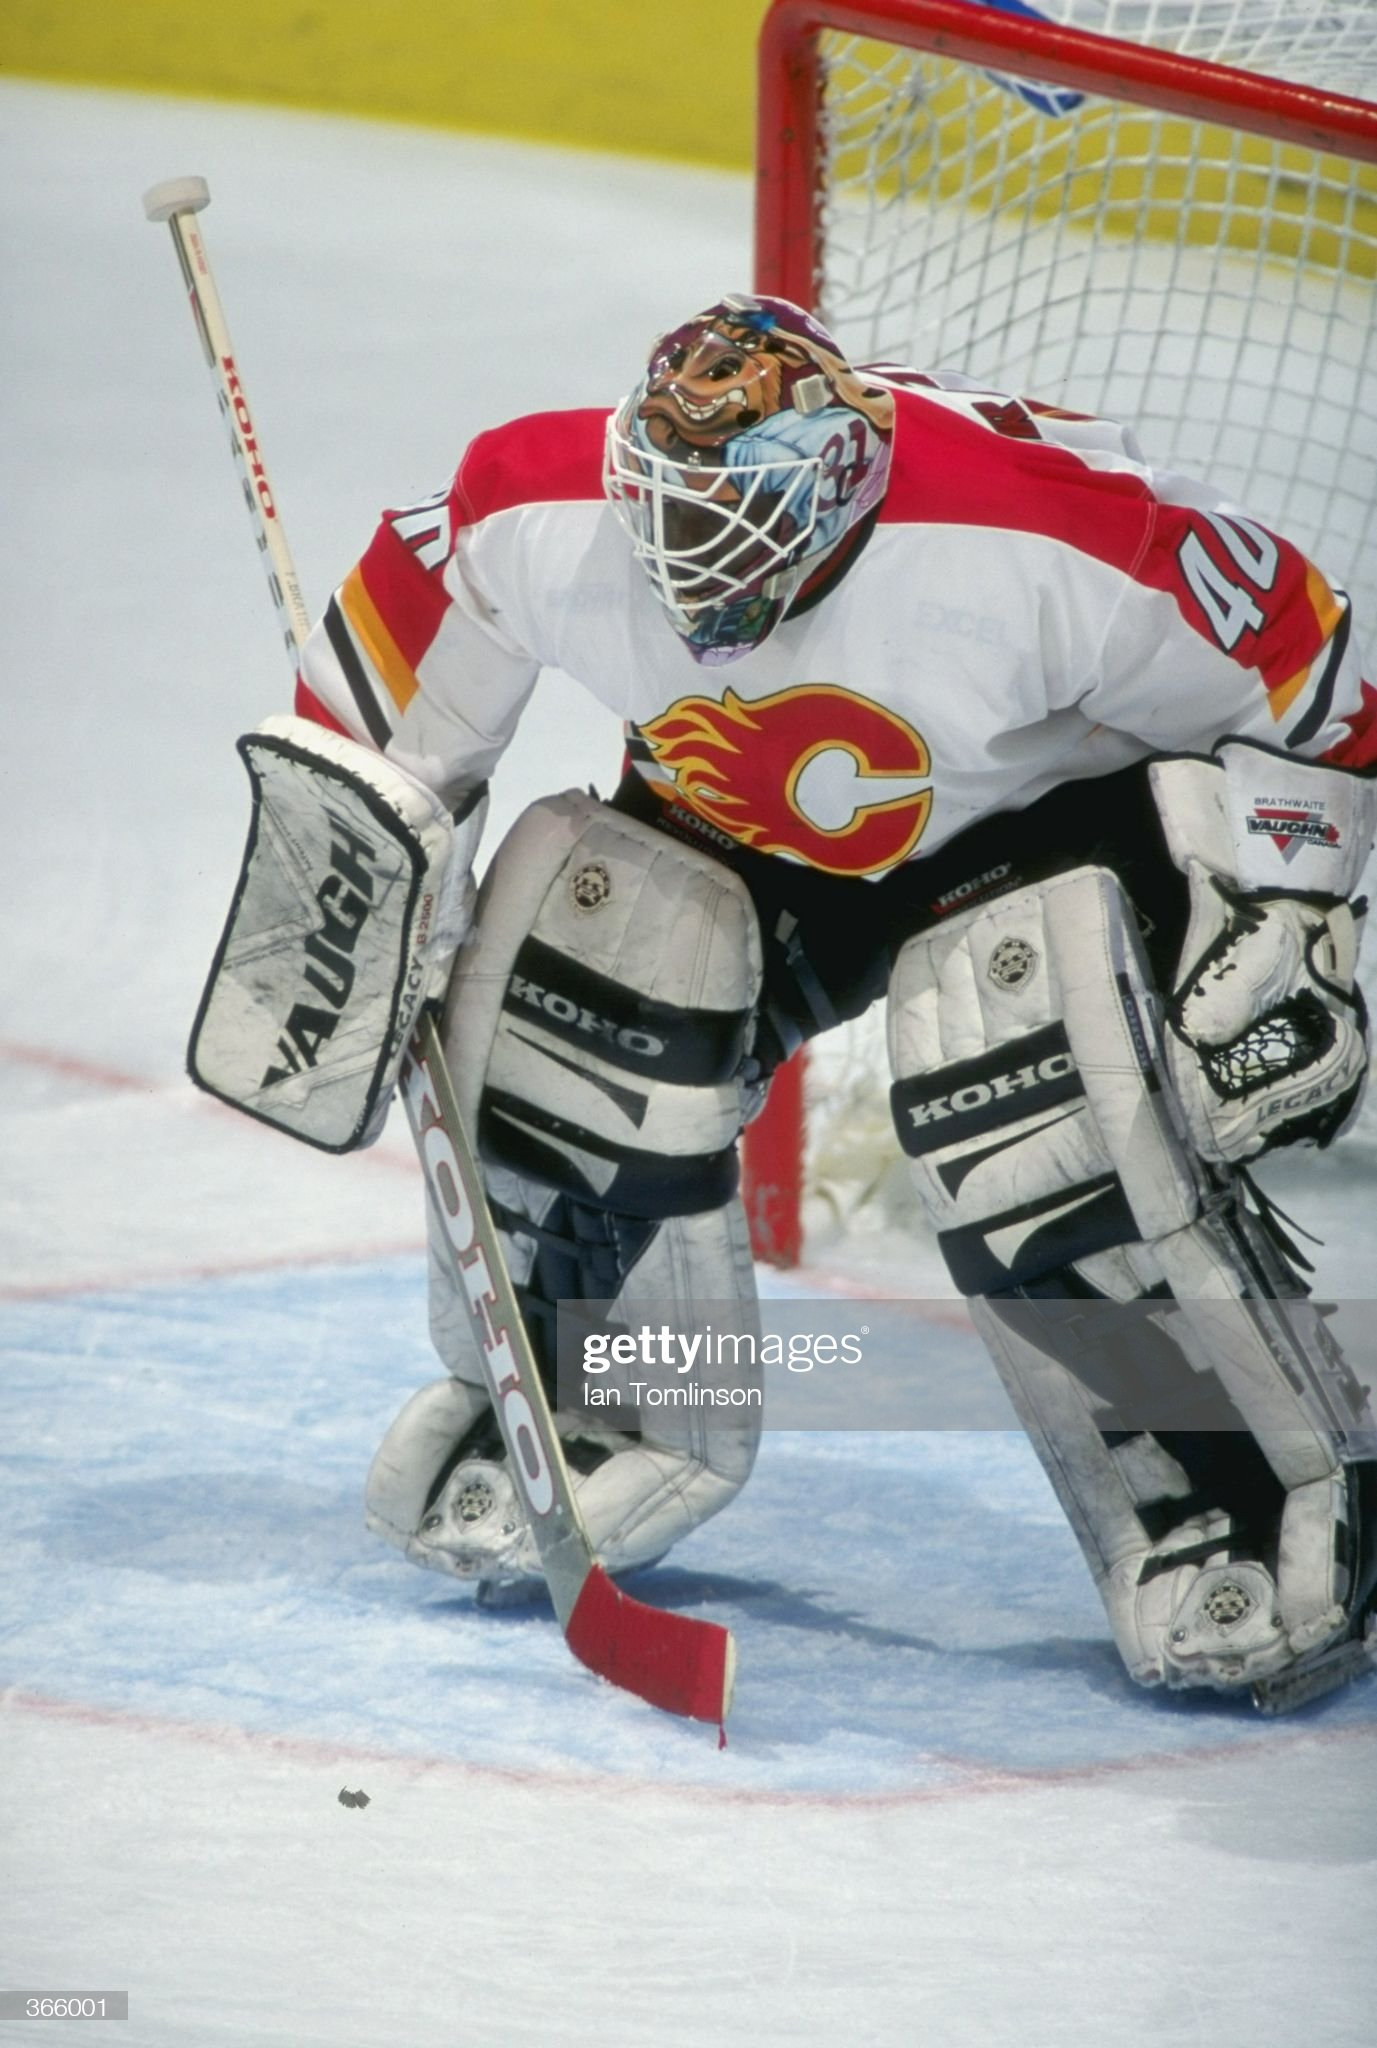 jan-1999-goalie-fred-brathwaite-of-the-c